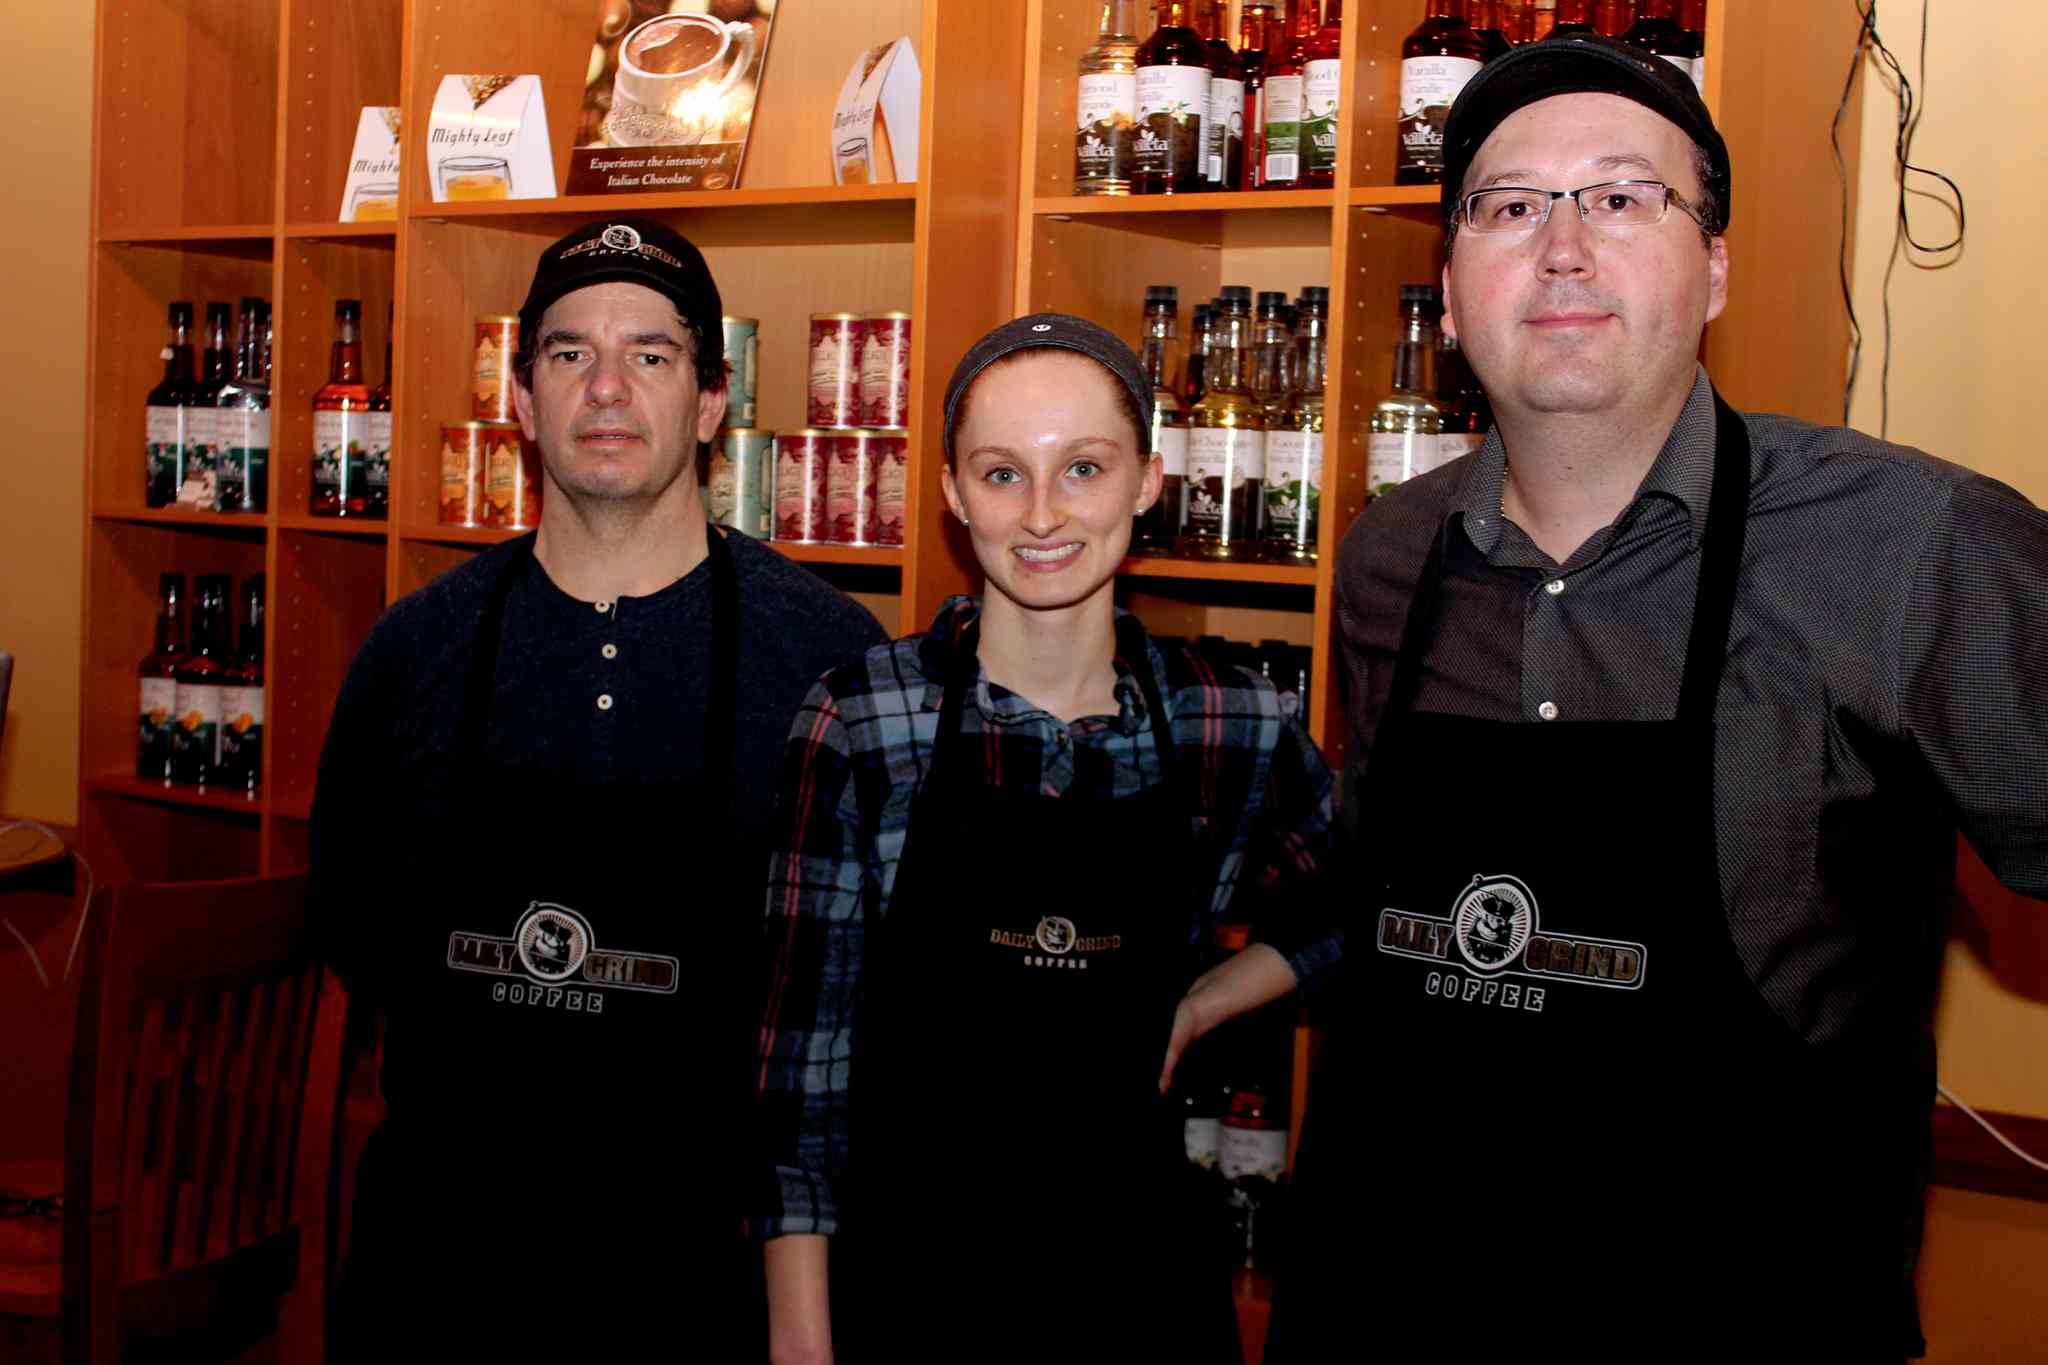 (From left) Tom Paquette, partner and manager; Louise Oborne, barista; and Massimo Iafolla, owner of Daily Grind Coffee.